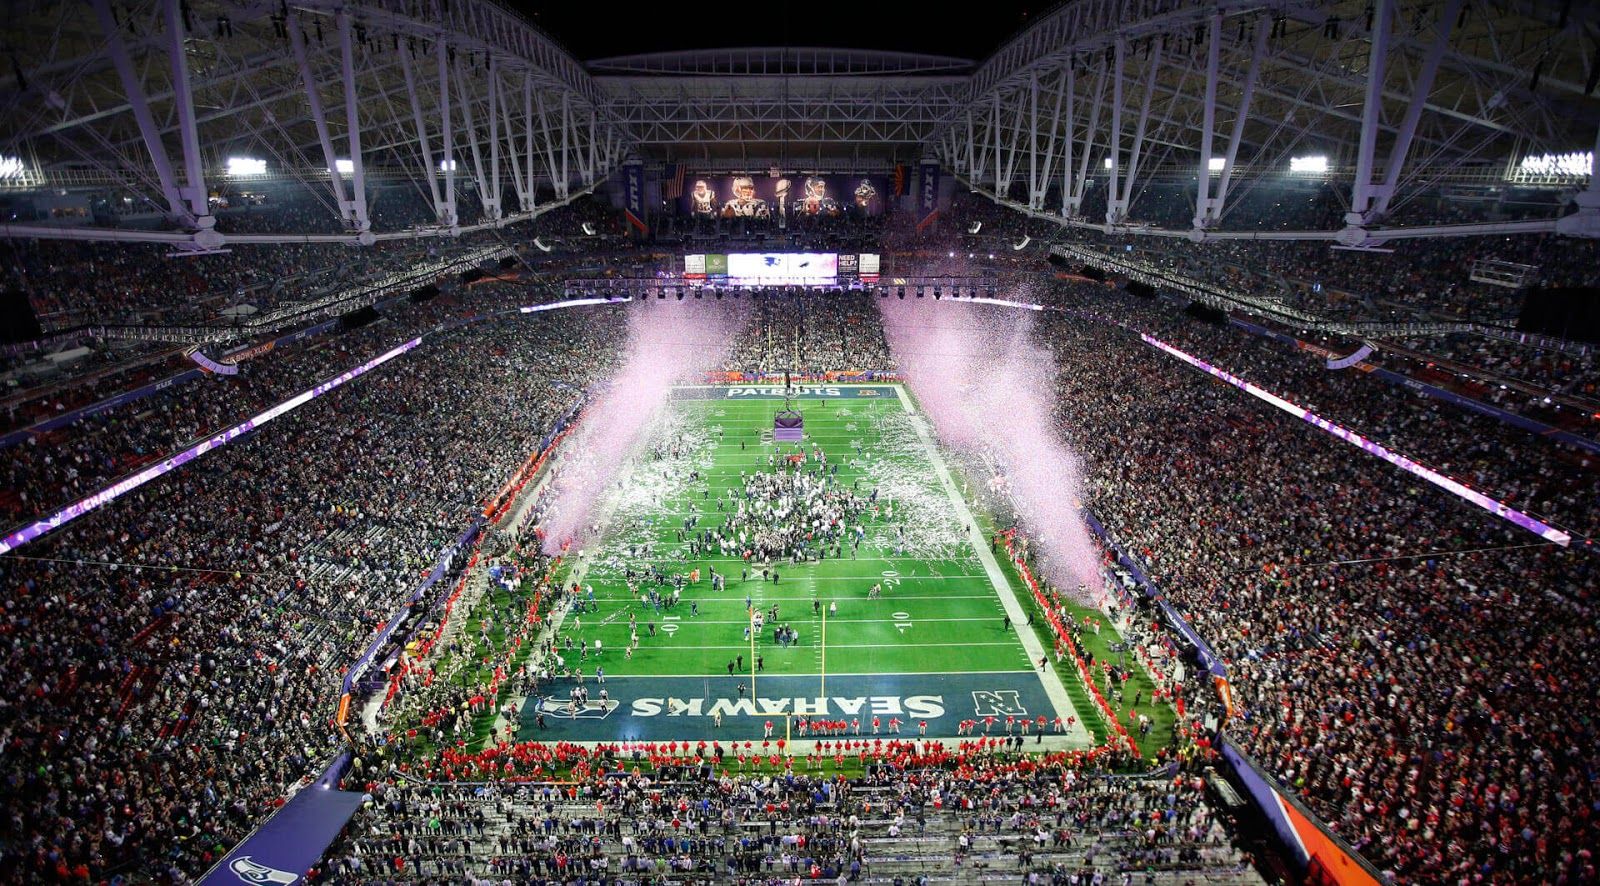 Super Bowl 2019 Field with Huge Crowd